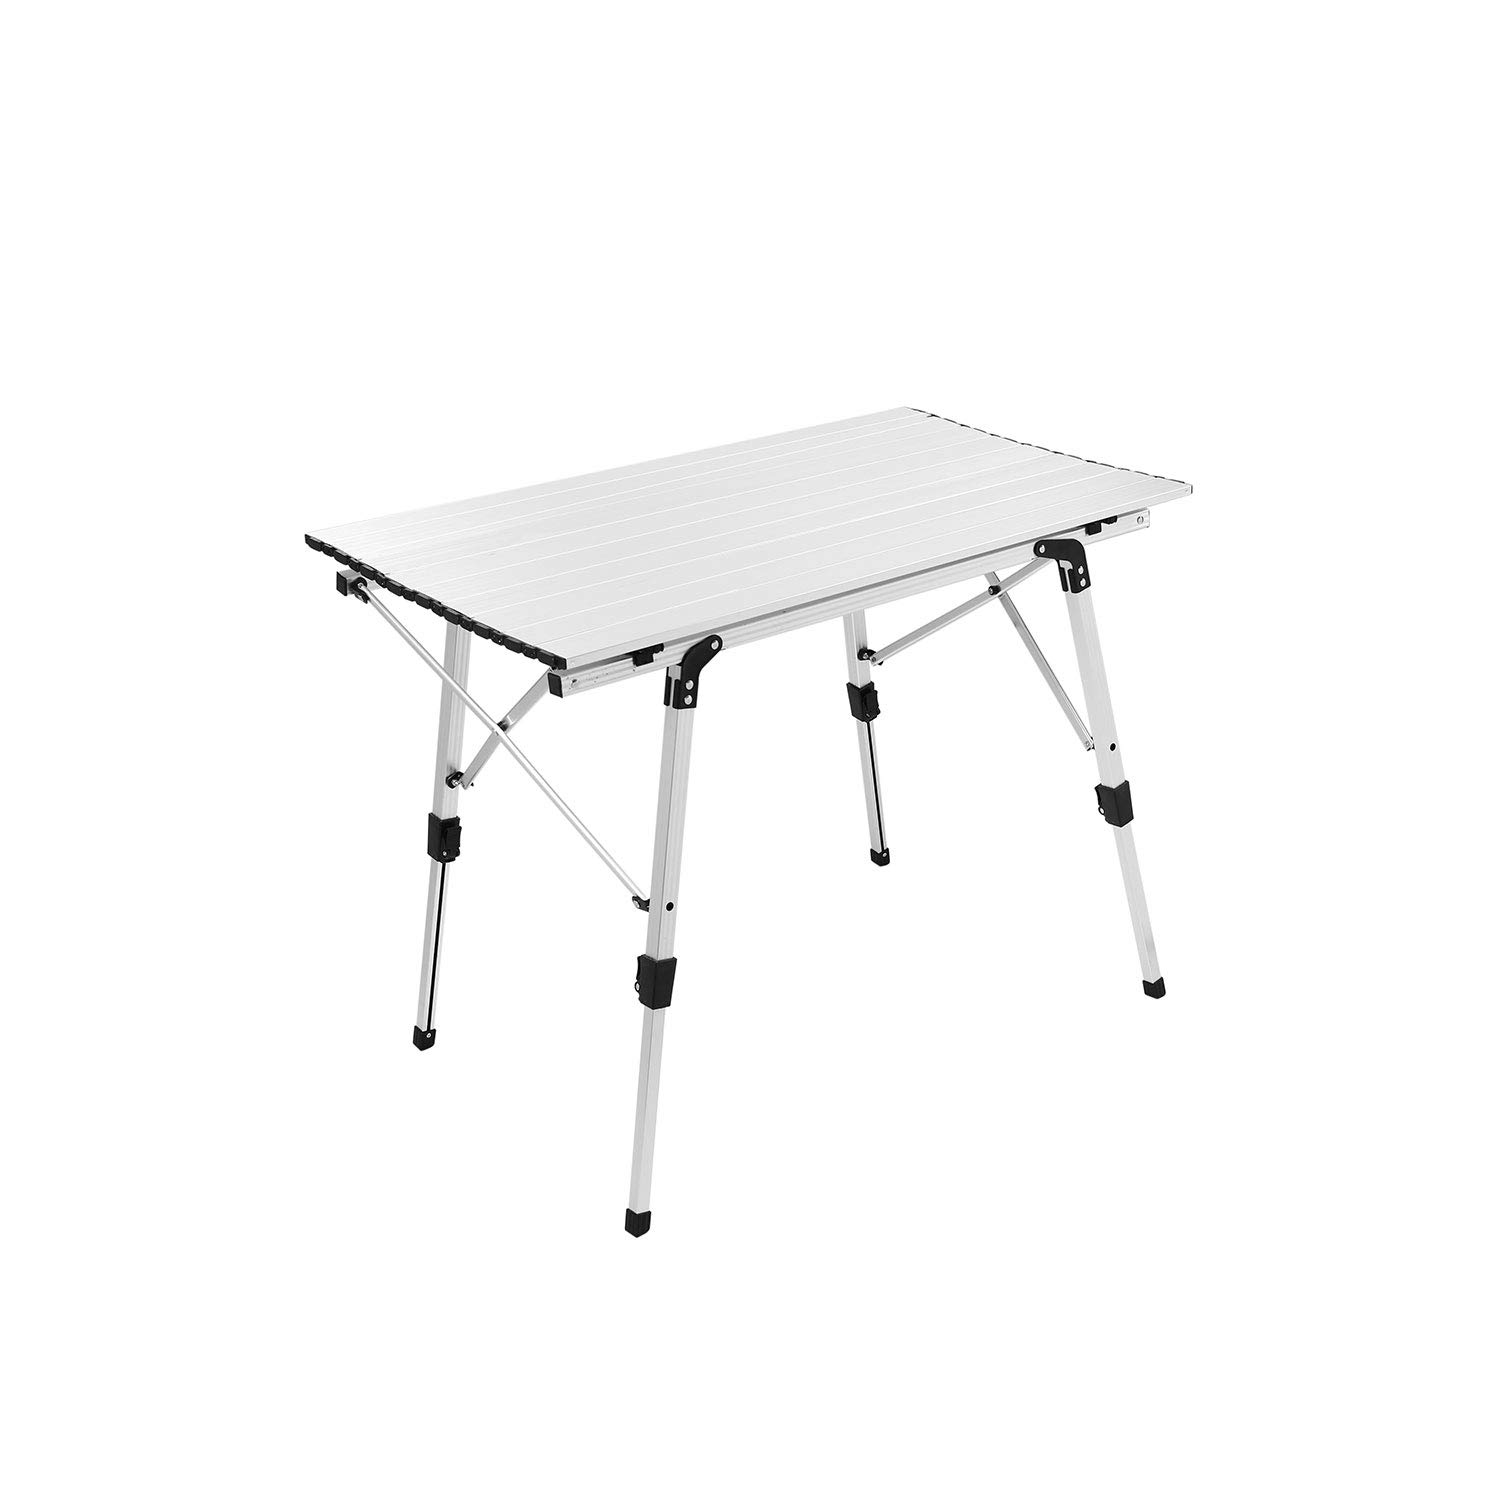 Tiptiper Roll up Table Camping Table 35.4 x20.3 Folding Table with Carrying Bag, Portable Picnic Table for BBQ, Cooking, Outdoor and Home Use